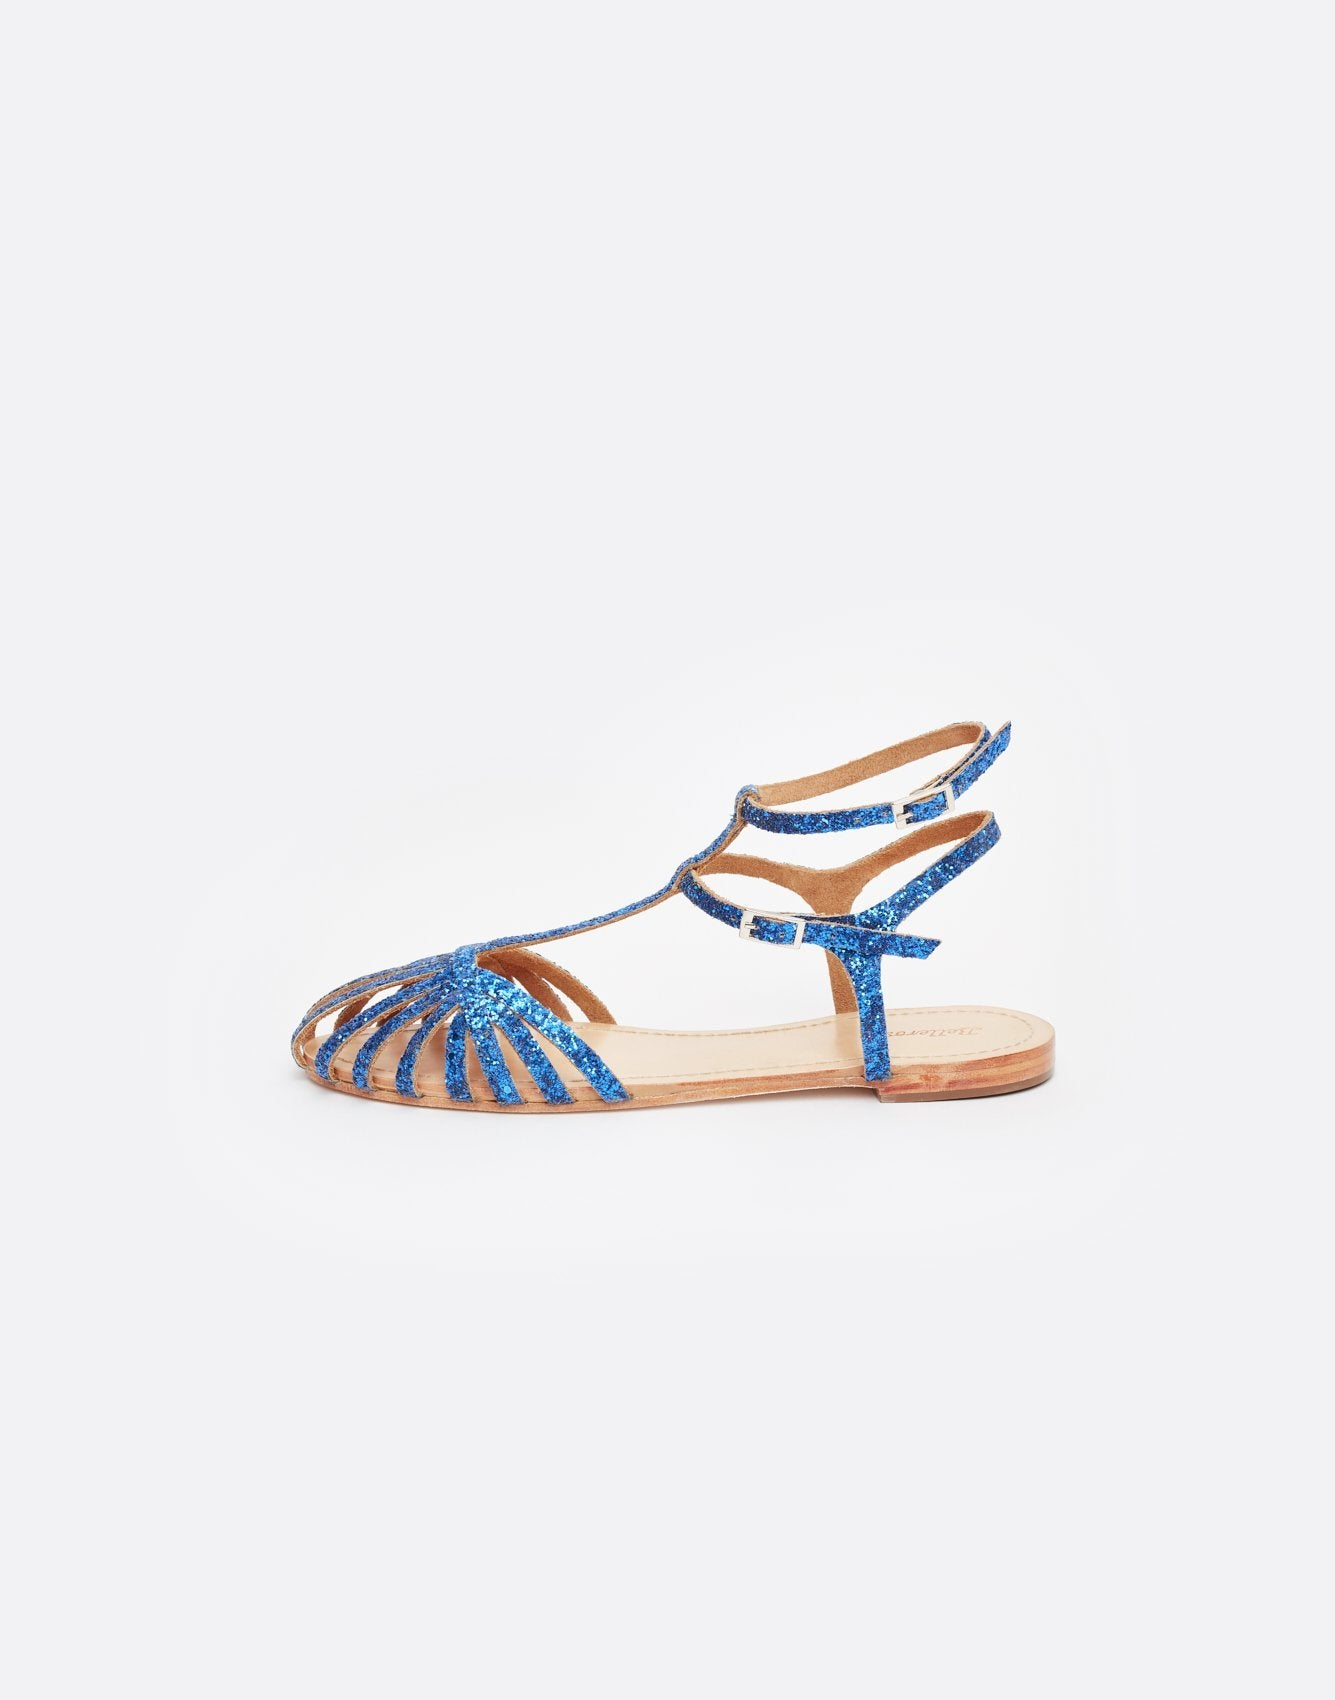 Bellerose blue glitter cow leather sandals